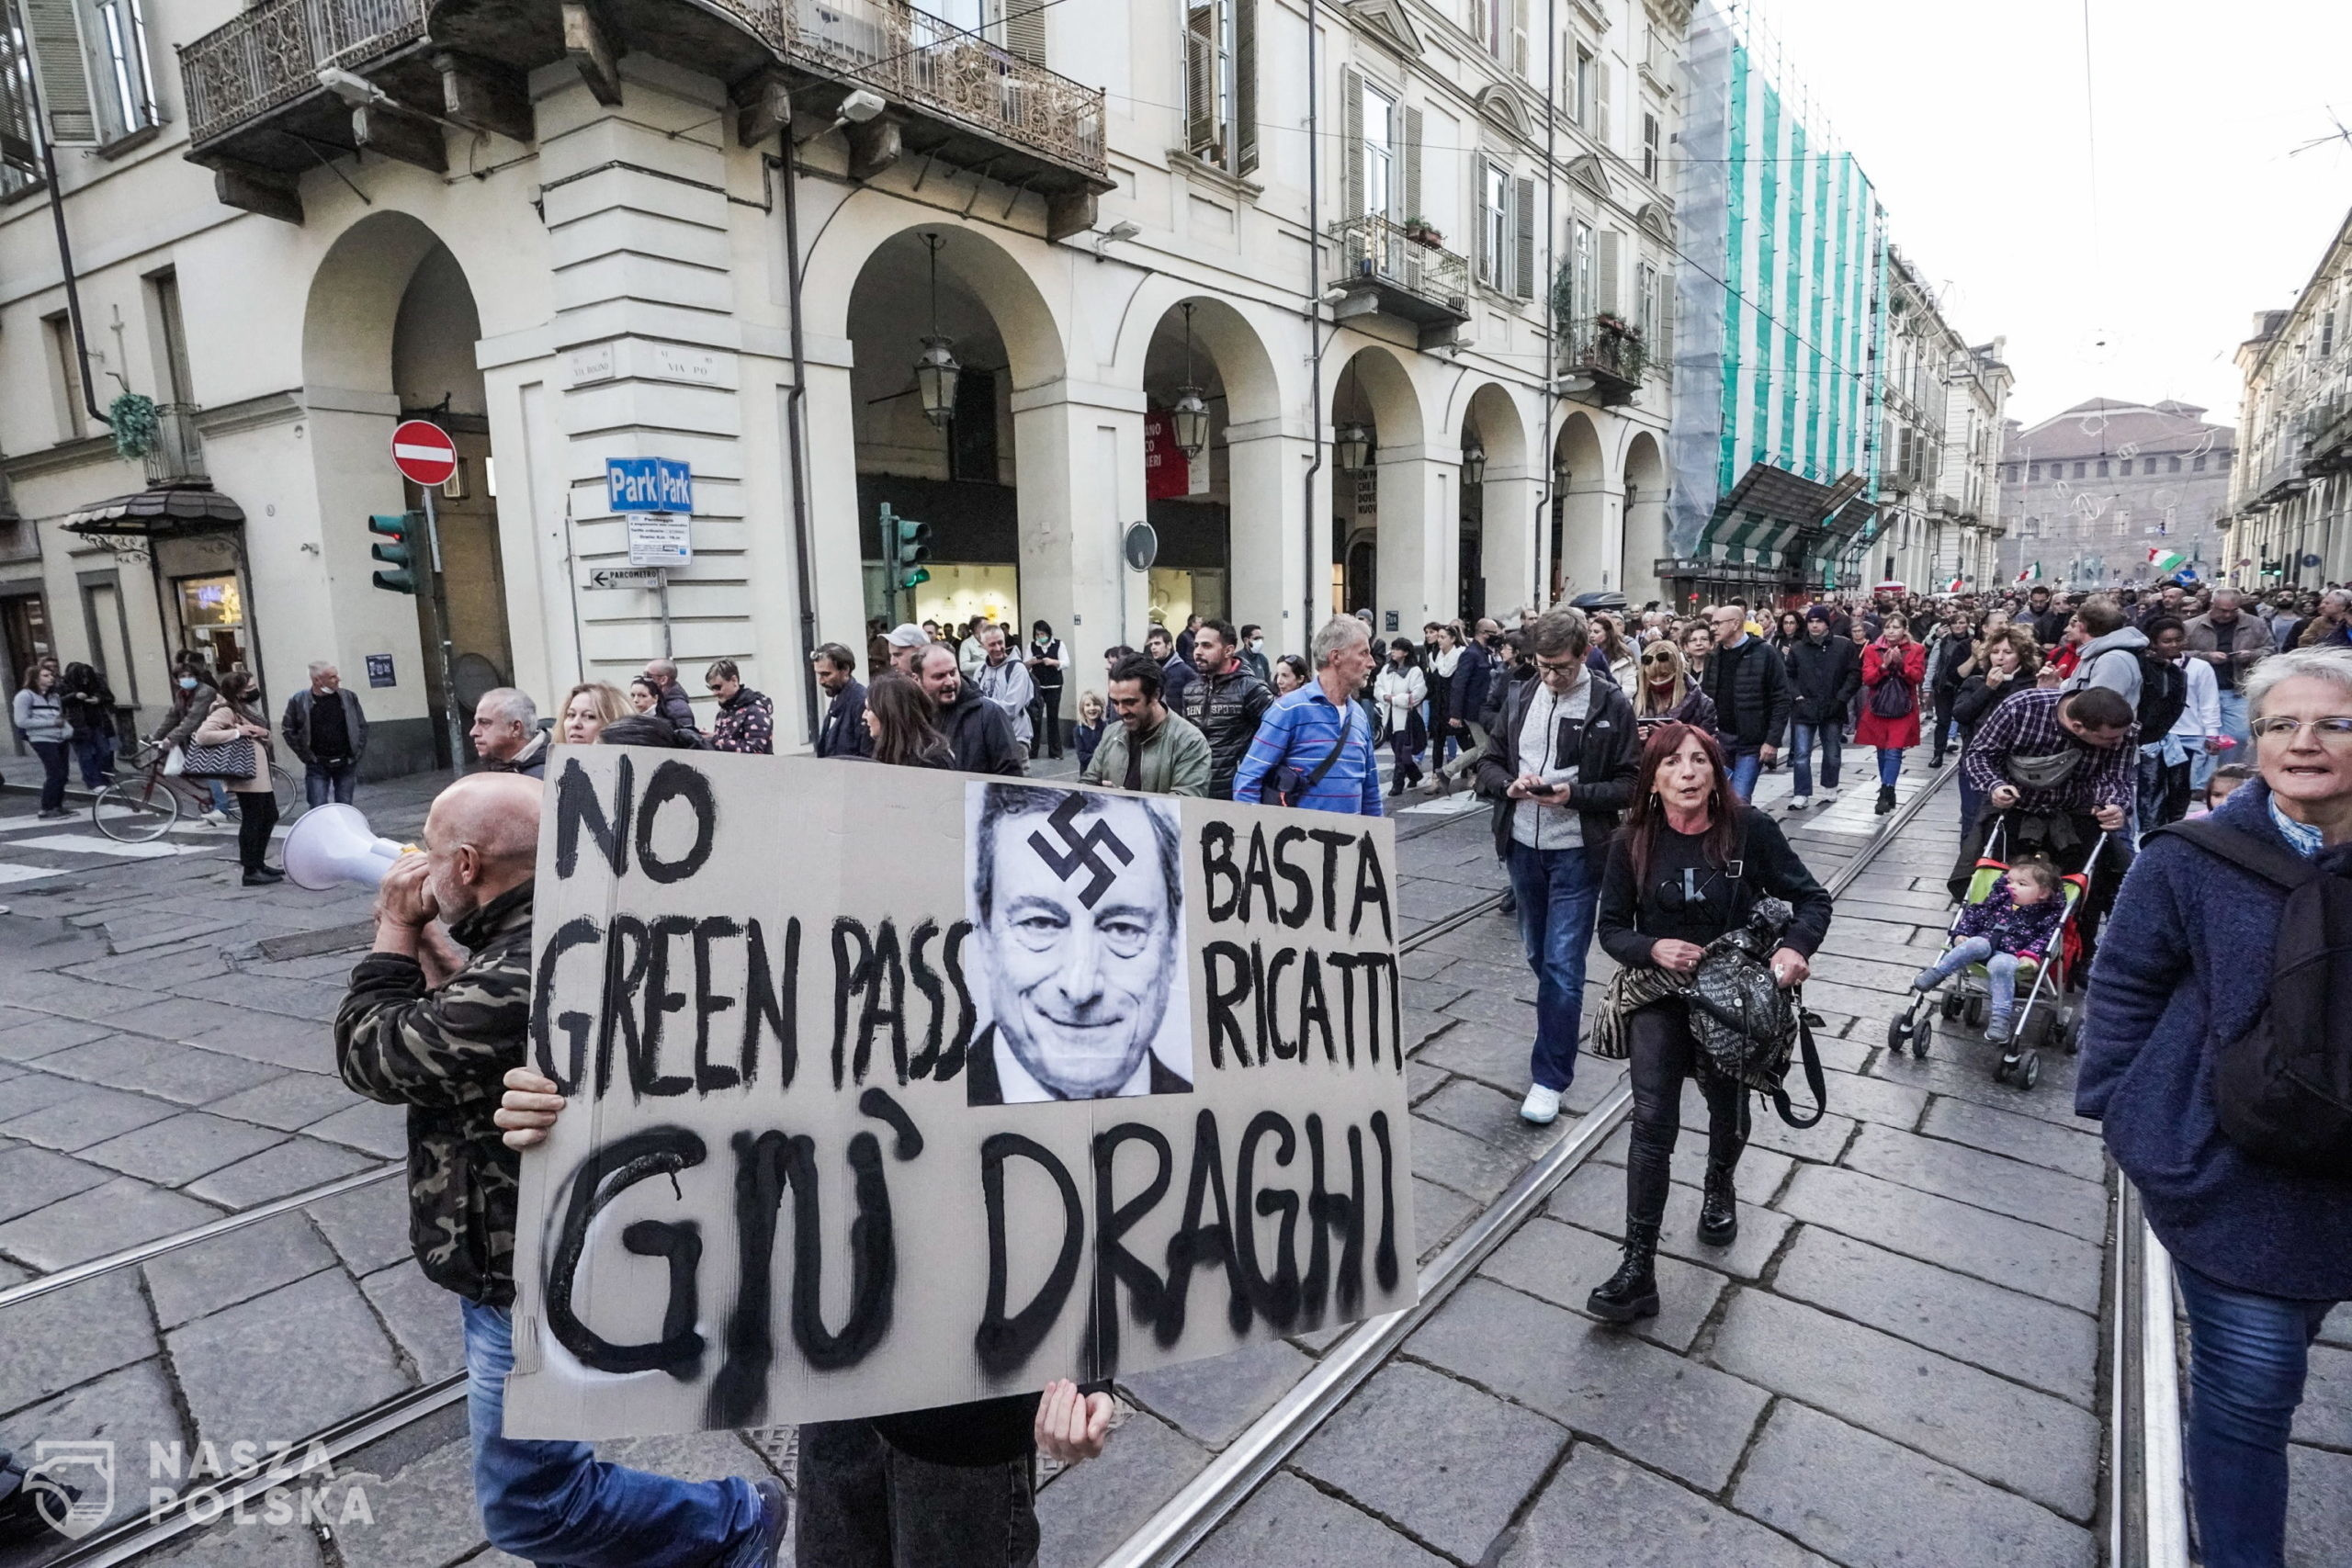 epa09527470 People take part in the No Green Pass rally in Turin, Italy, 16 October 2021. Starting from 15 October, Italian workers from the public and private sectors are required to hold the 'Green Pass' vaccine passport.  EPA/Tino Romano  Dostawca: PAP/EPA.